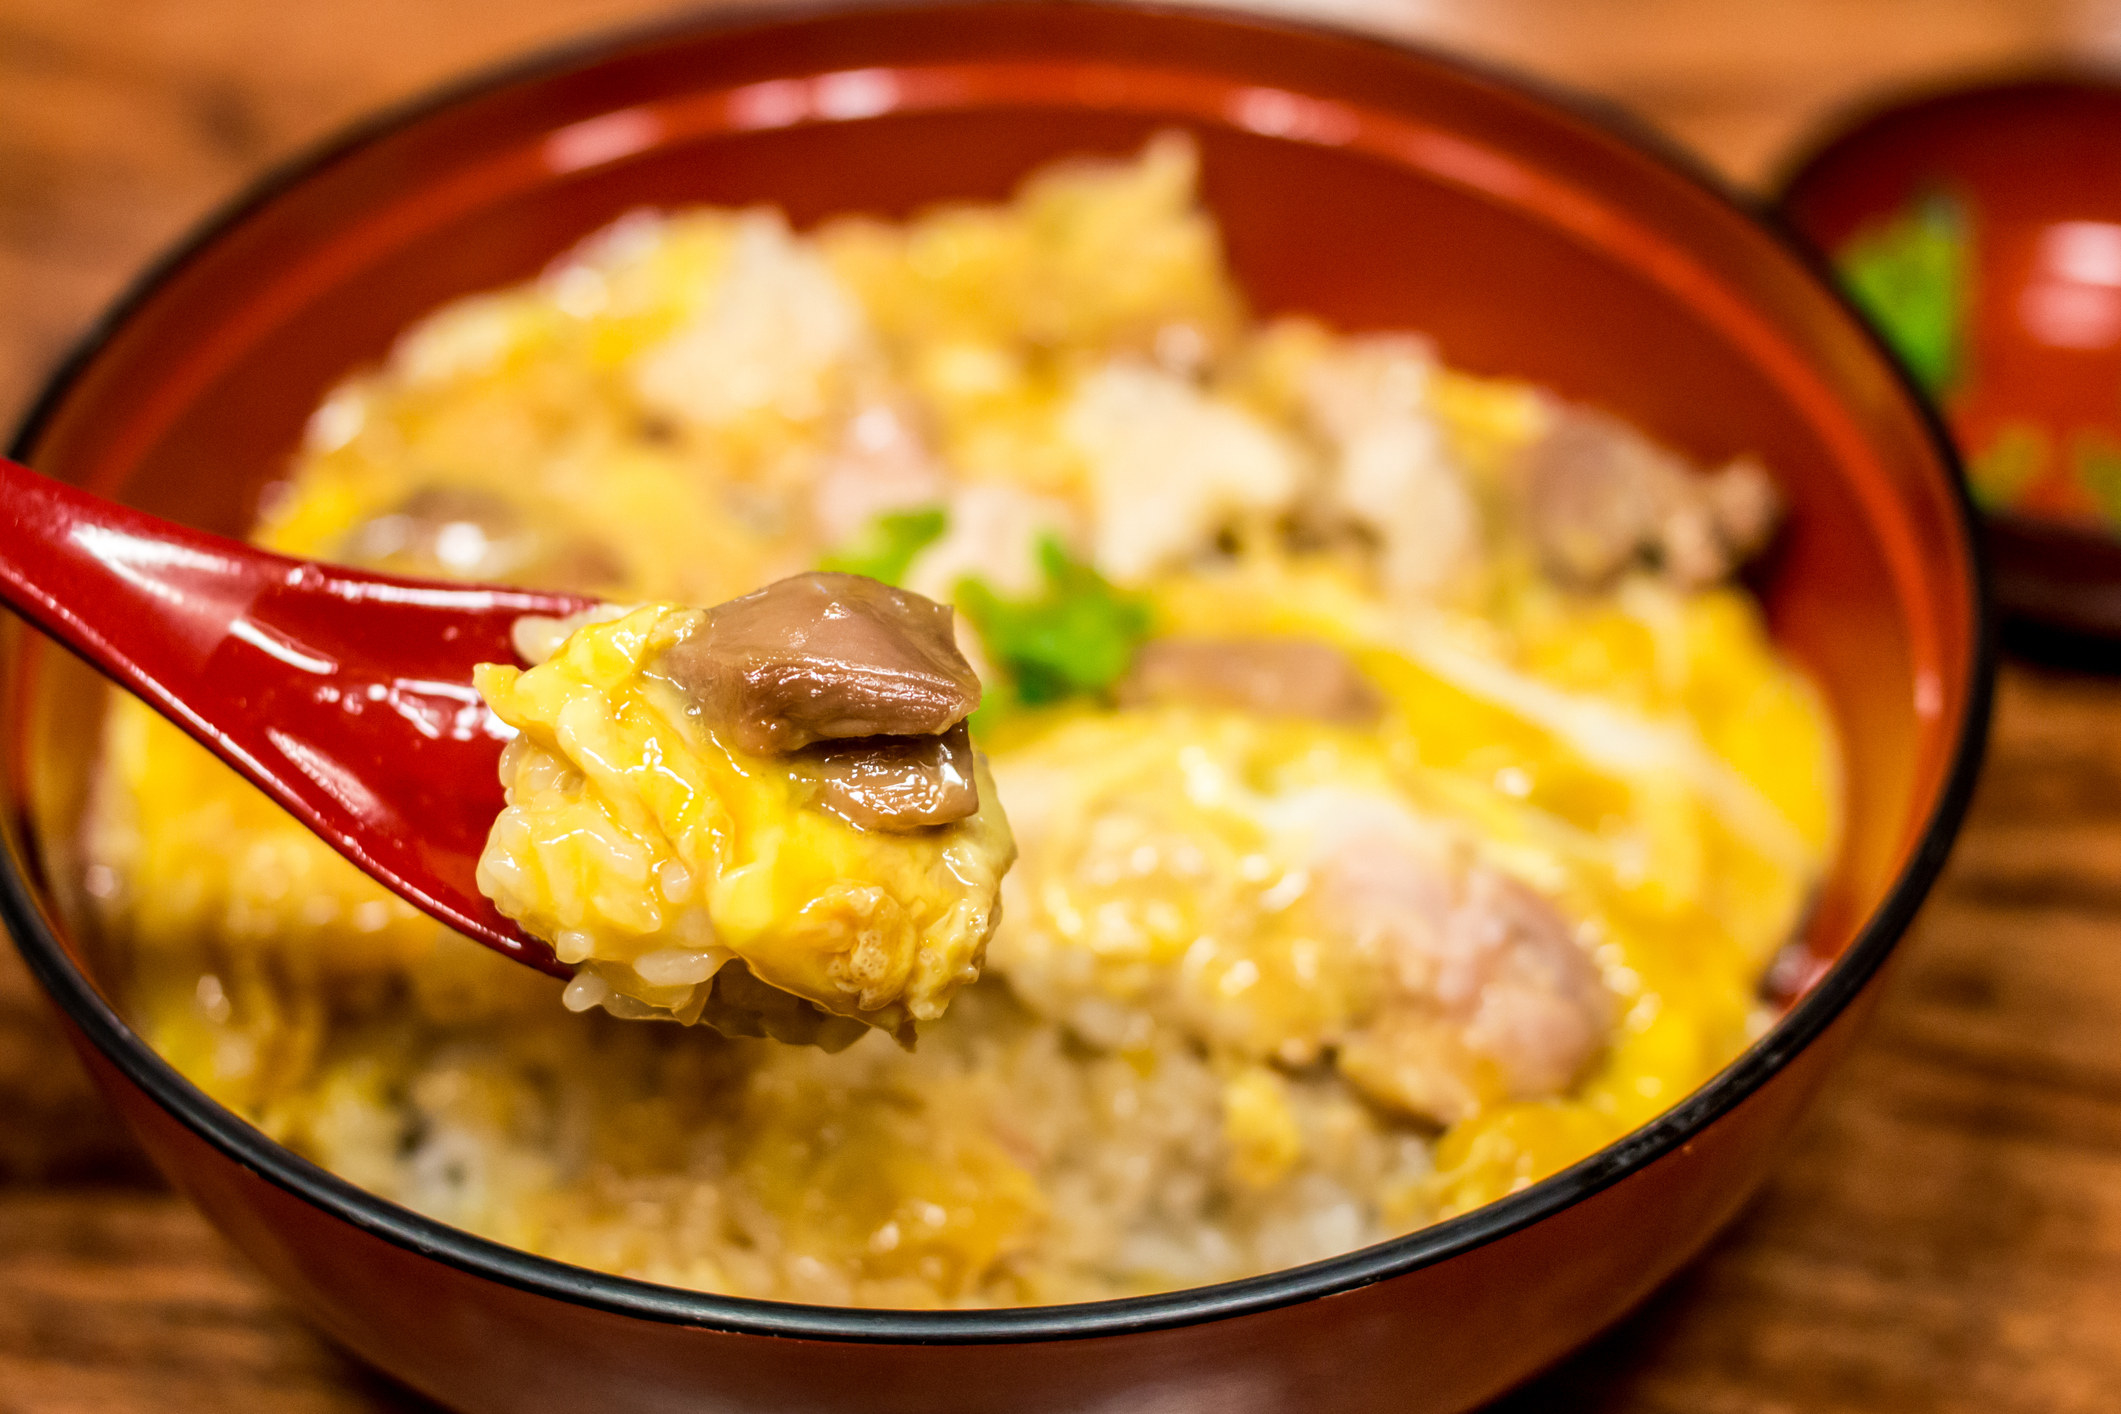 Japanese chicken and egg bowl.